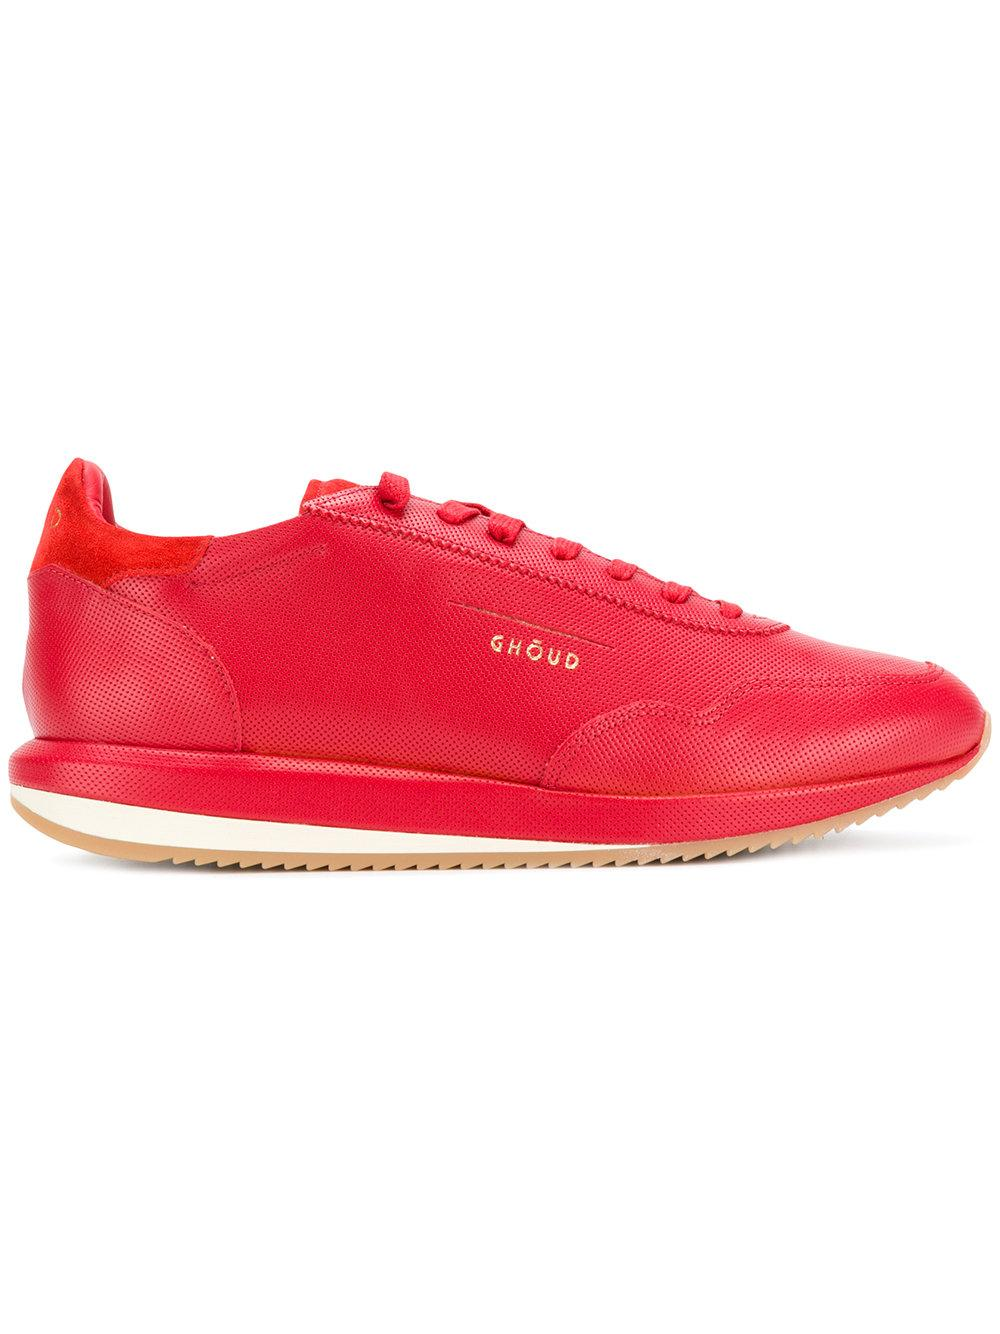 Ghoud Lace Up Sneakers